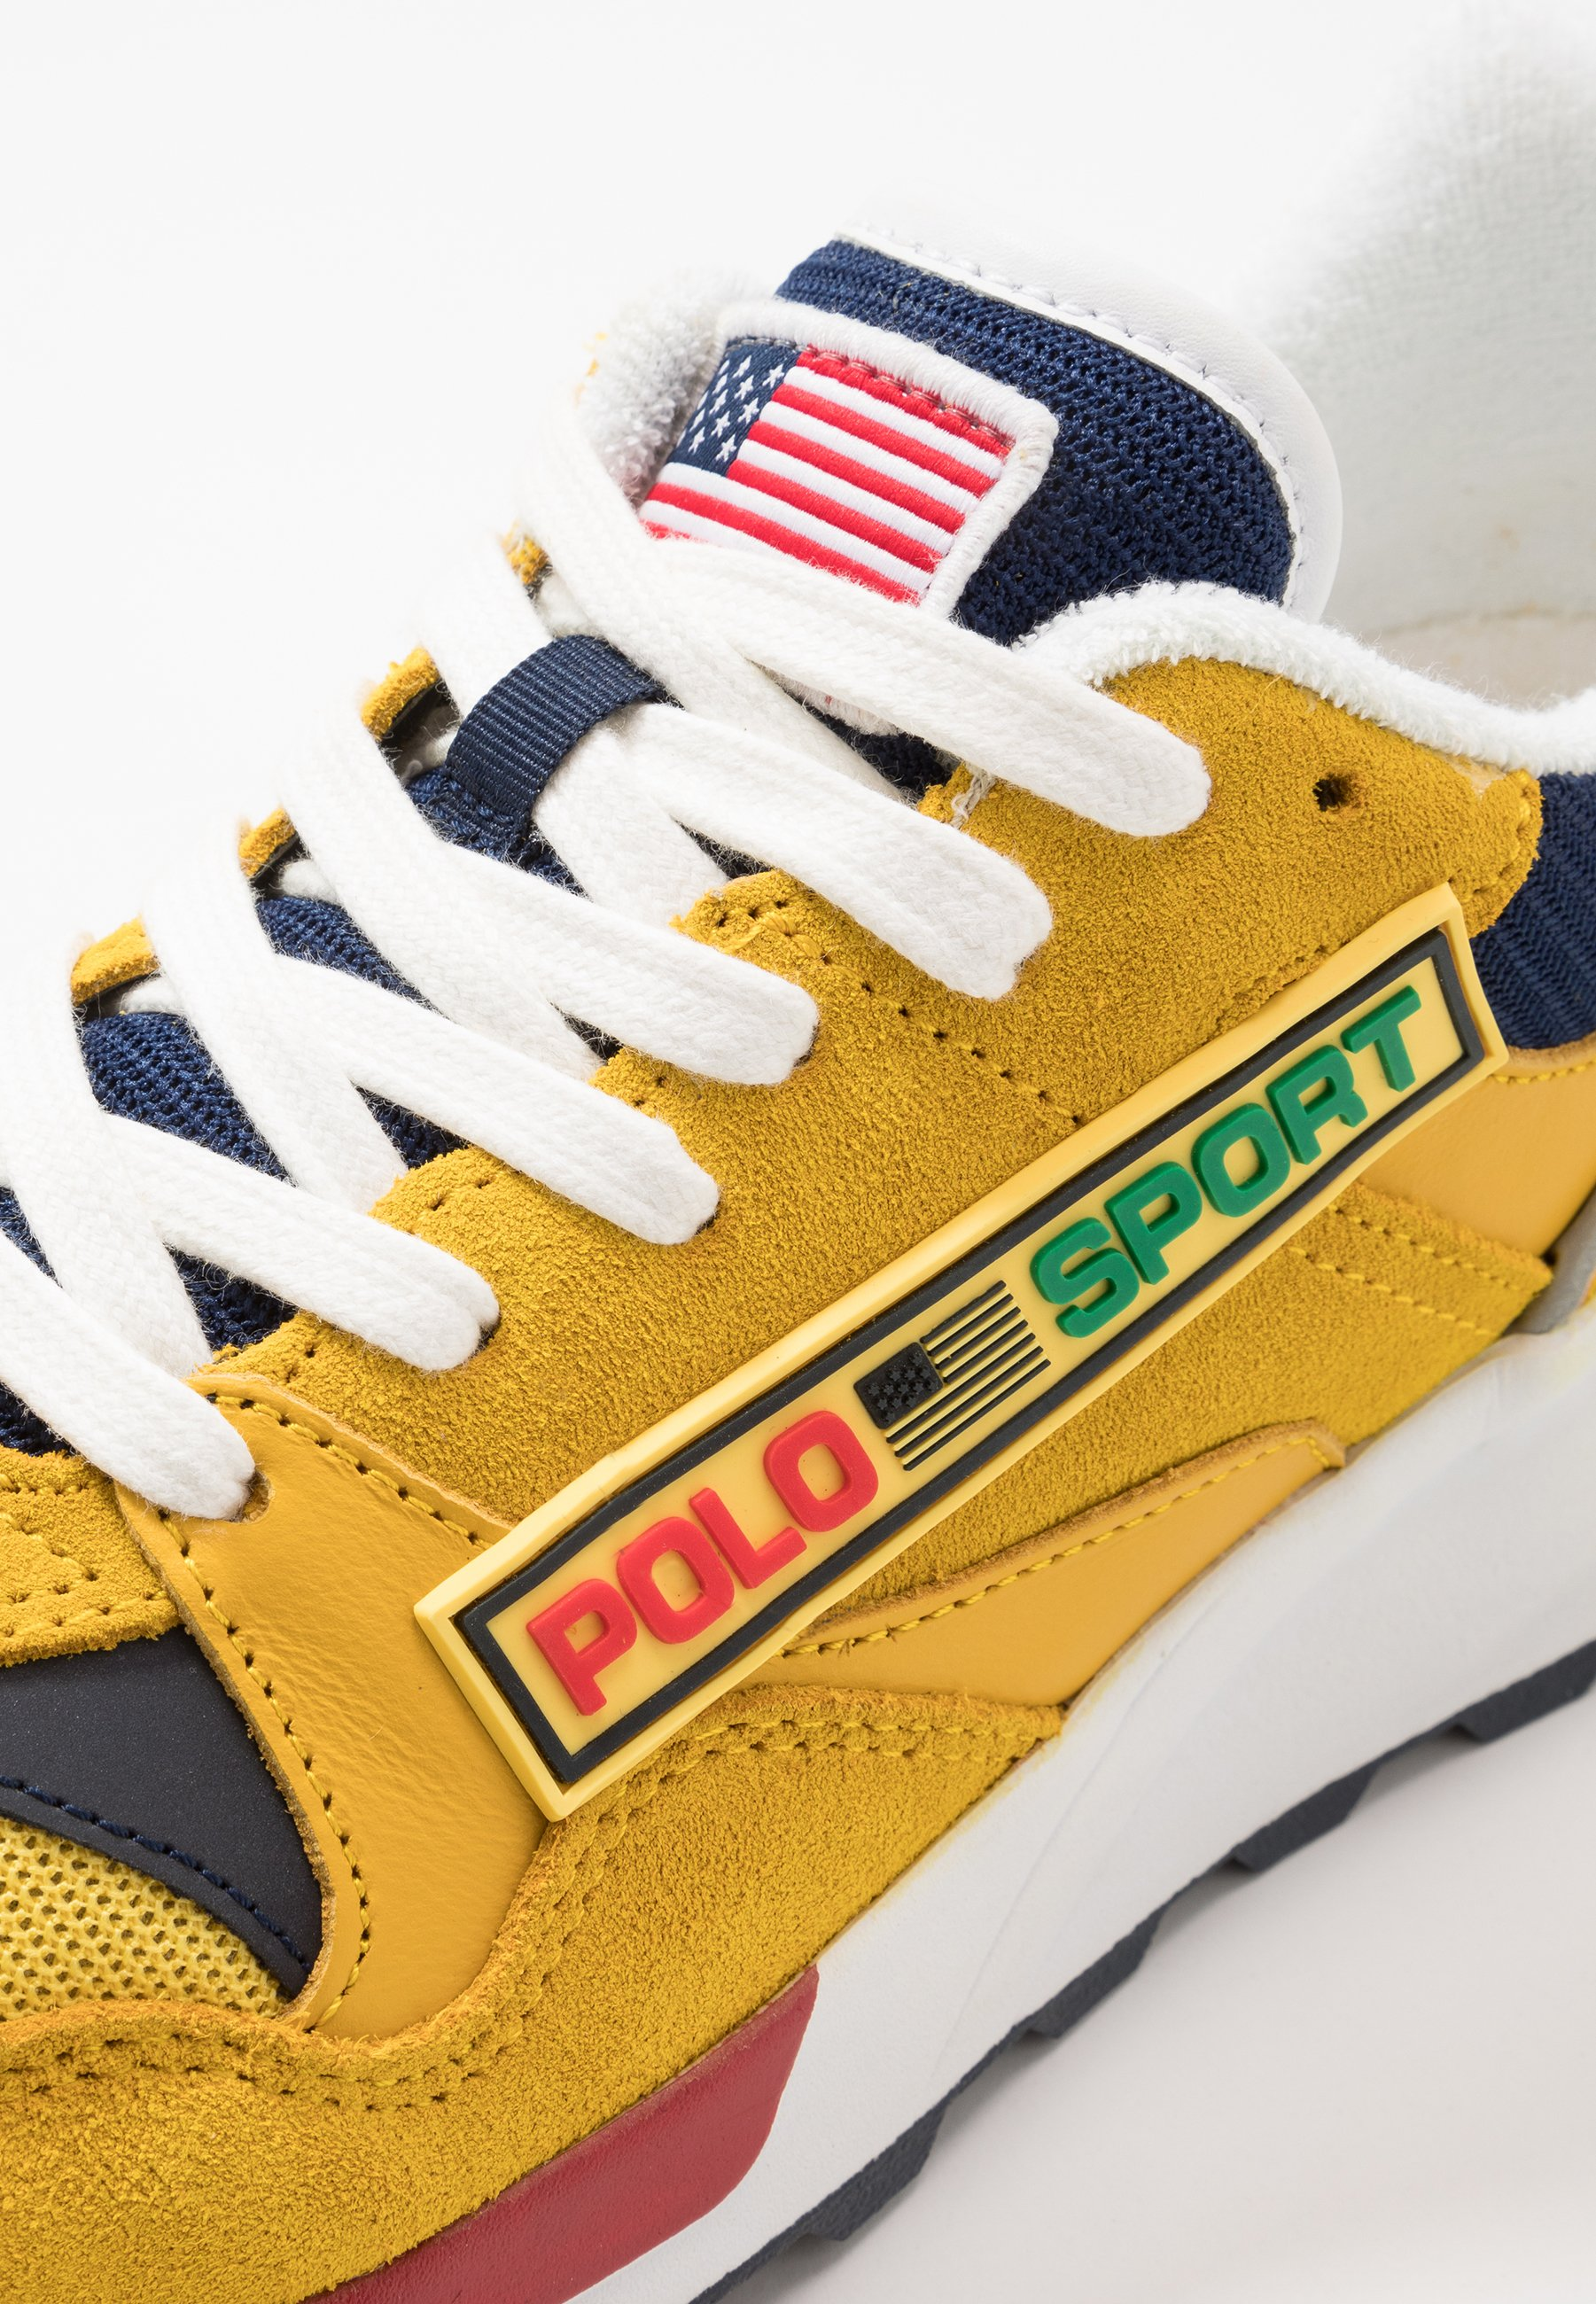 Polo Ralph Lauren Sneakers - Chrome Yellow